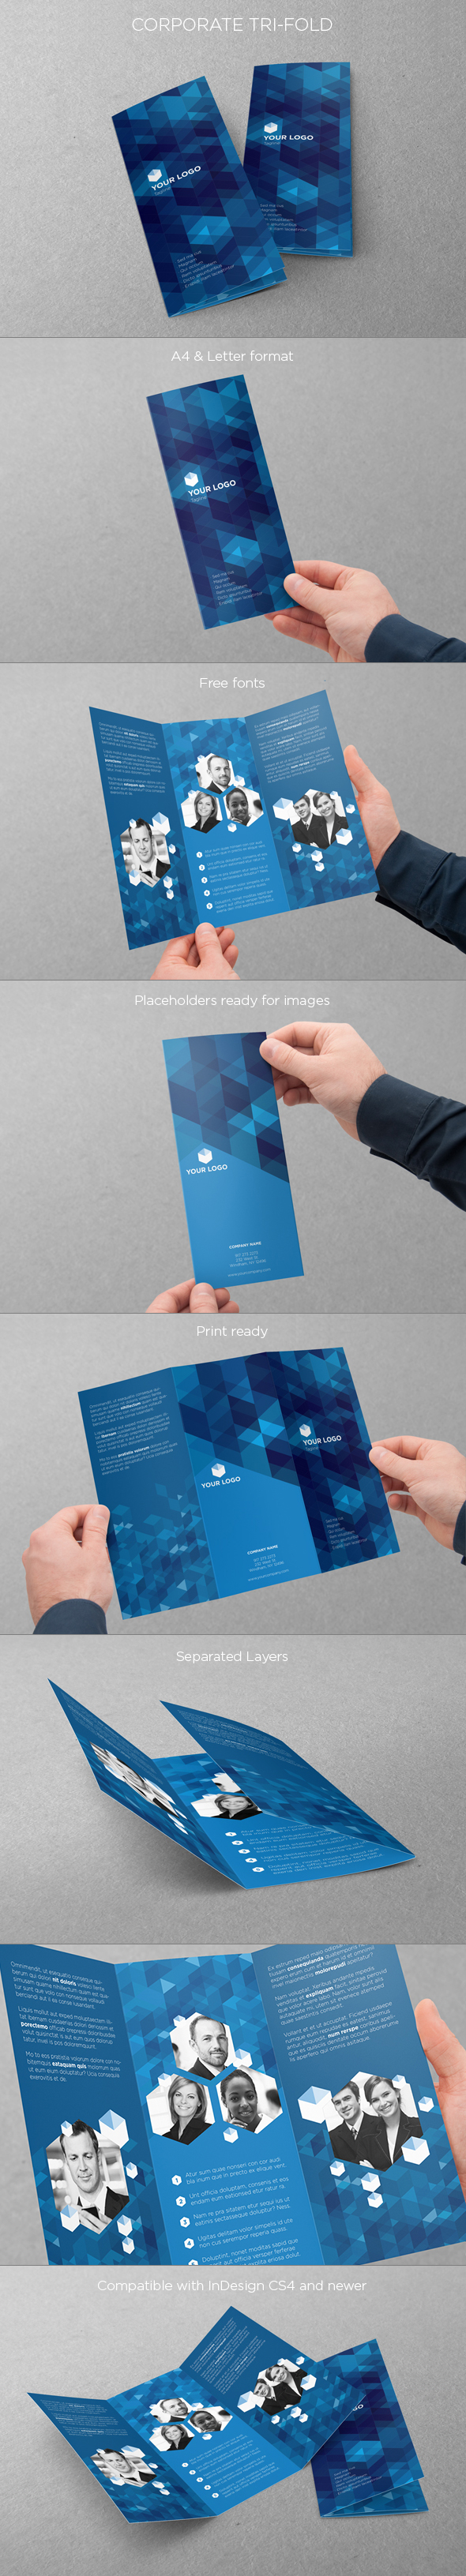 Business Trifold. Download here: http://graphicriver.net/item/business-trifold/4604625?ref=abradesign #design #trifold #brochure